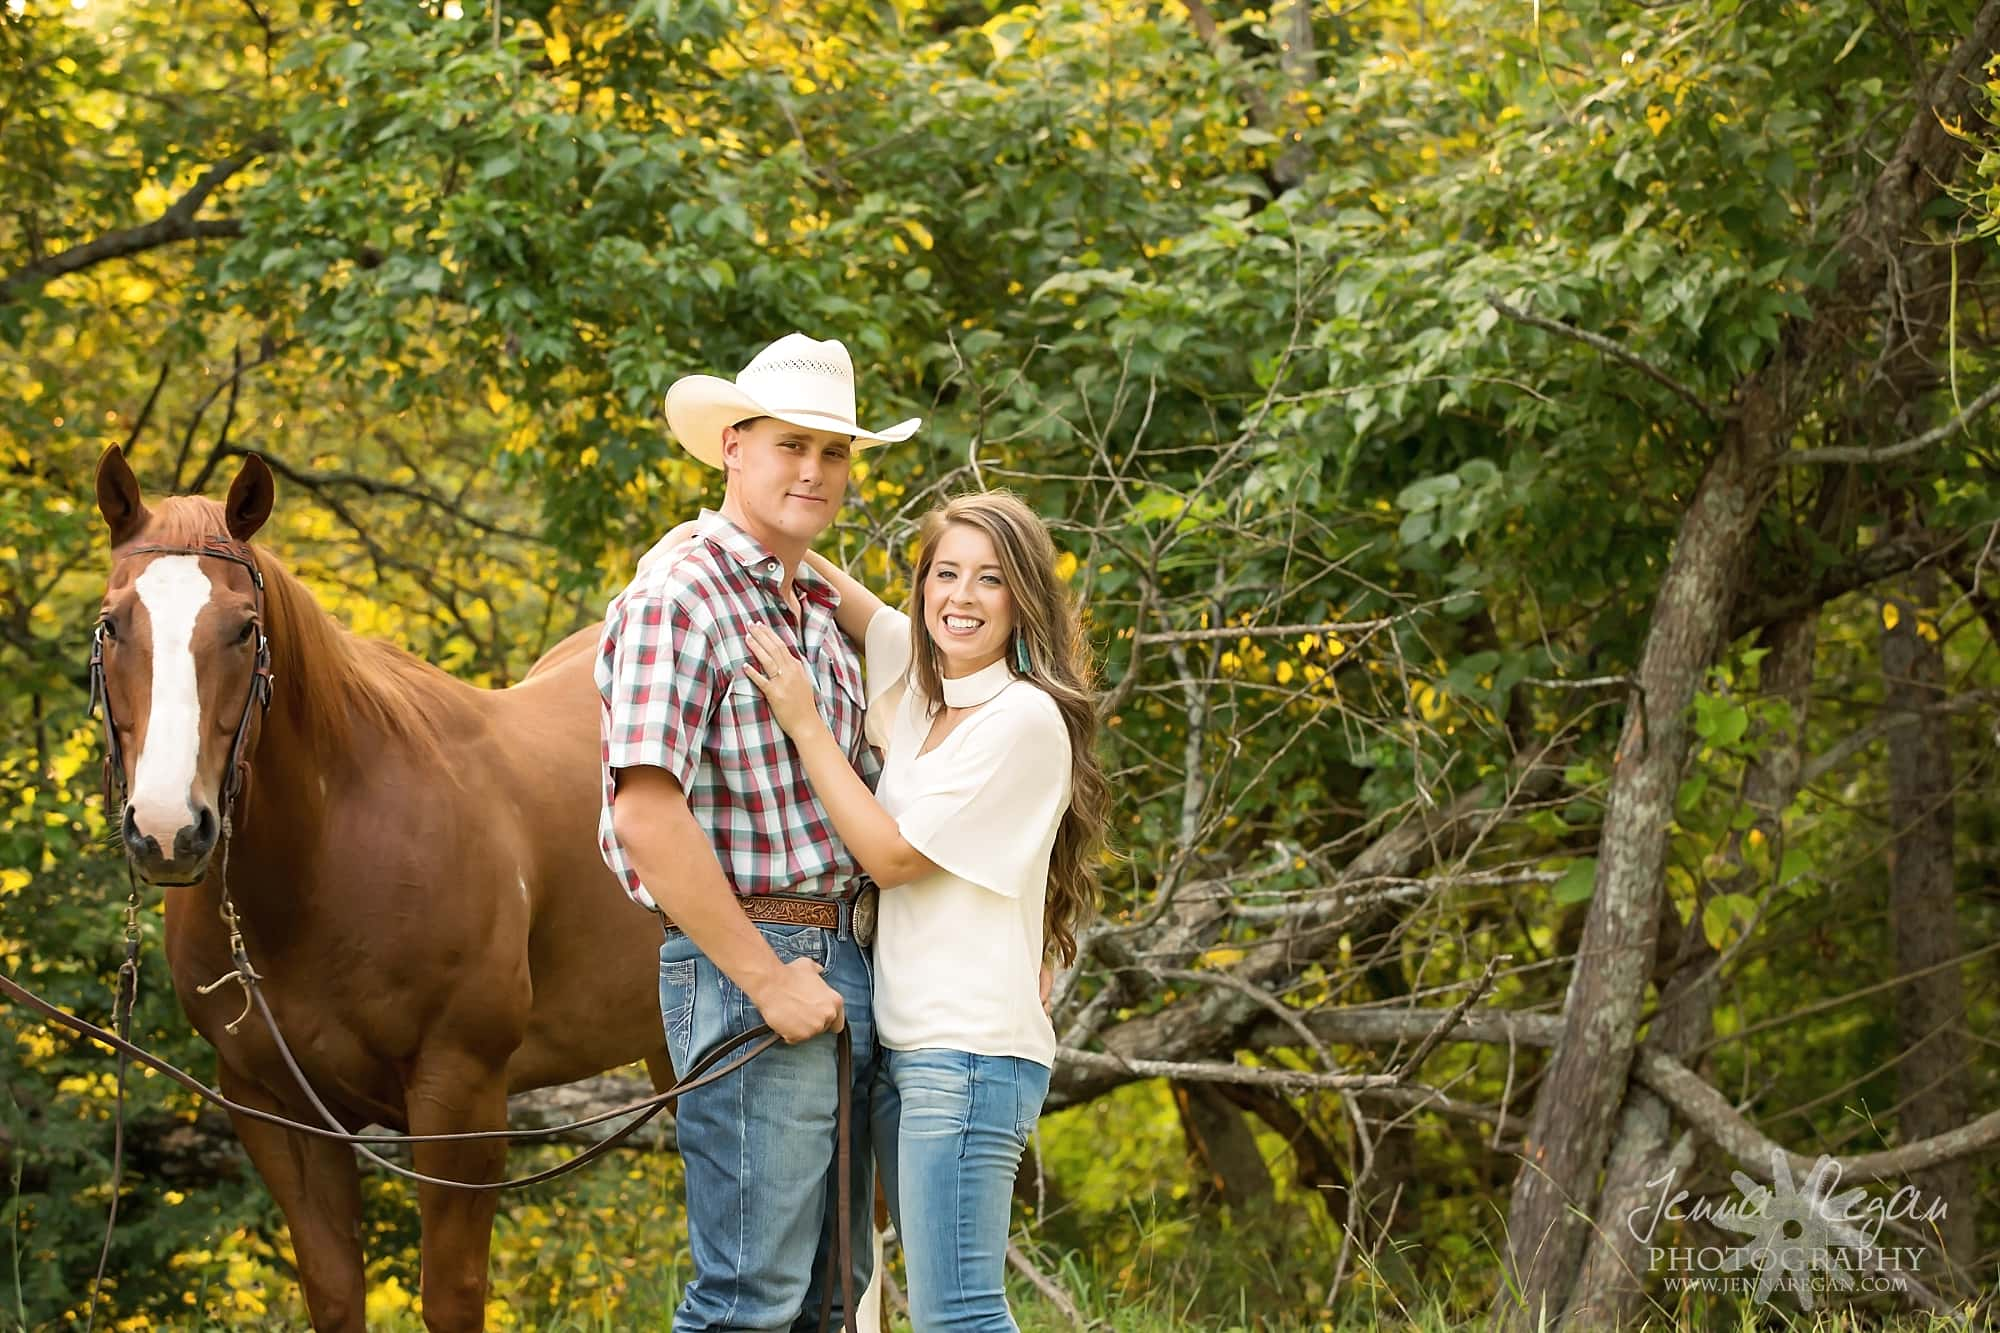 Engagement Photos With Horses Dallas Equine Photography Jenna Regan Photography